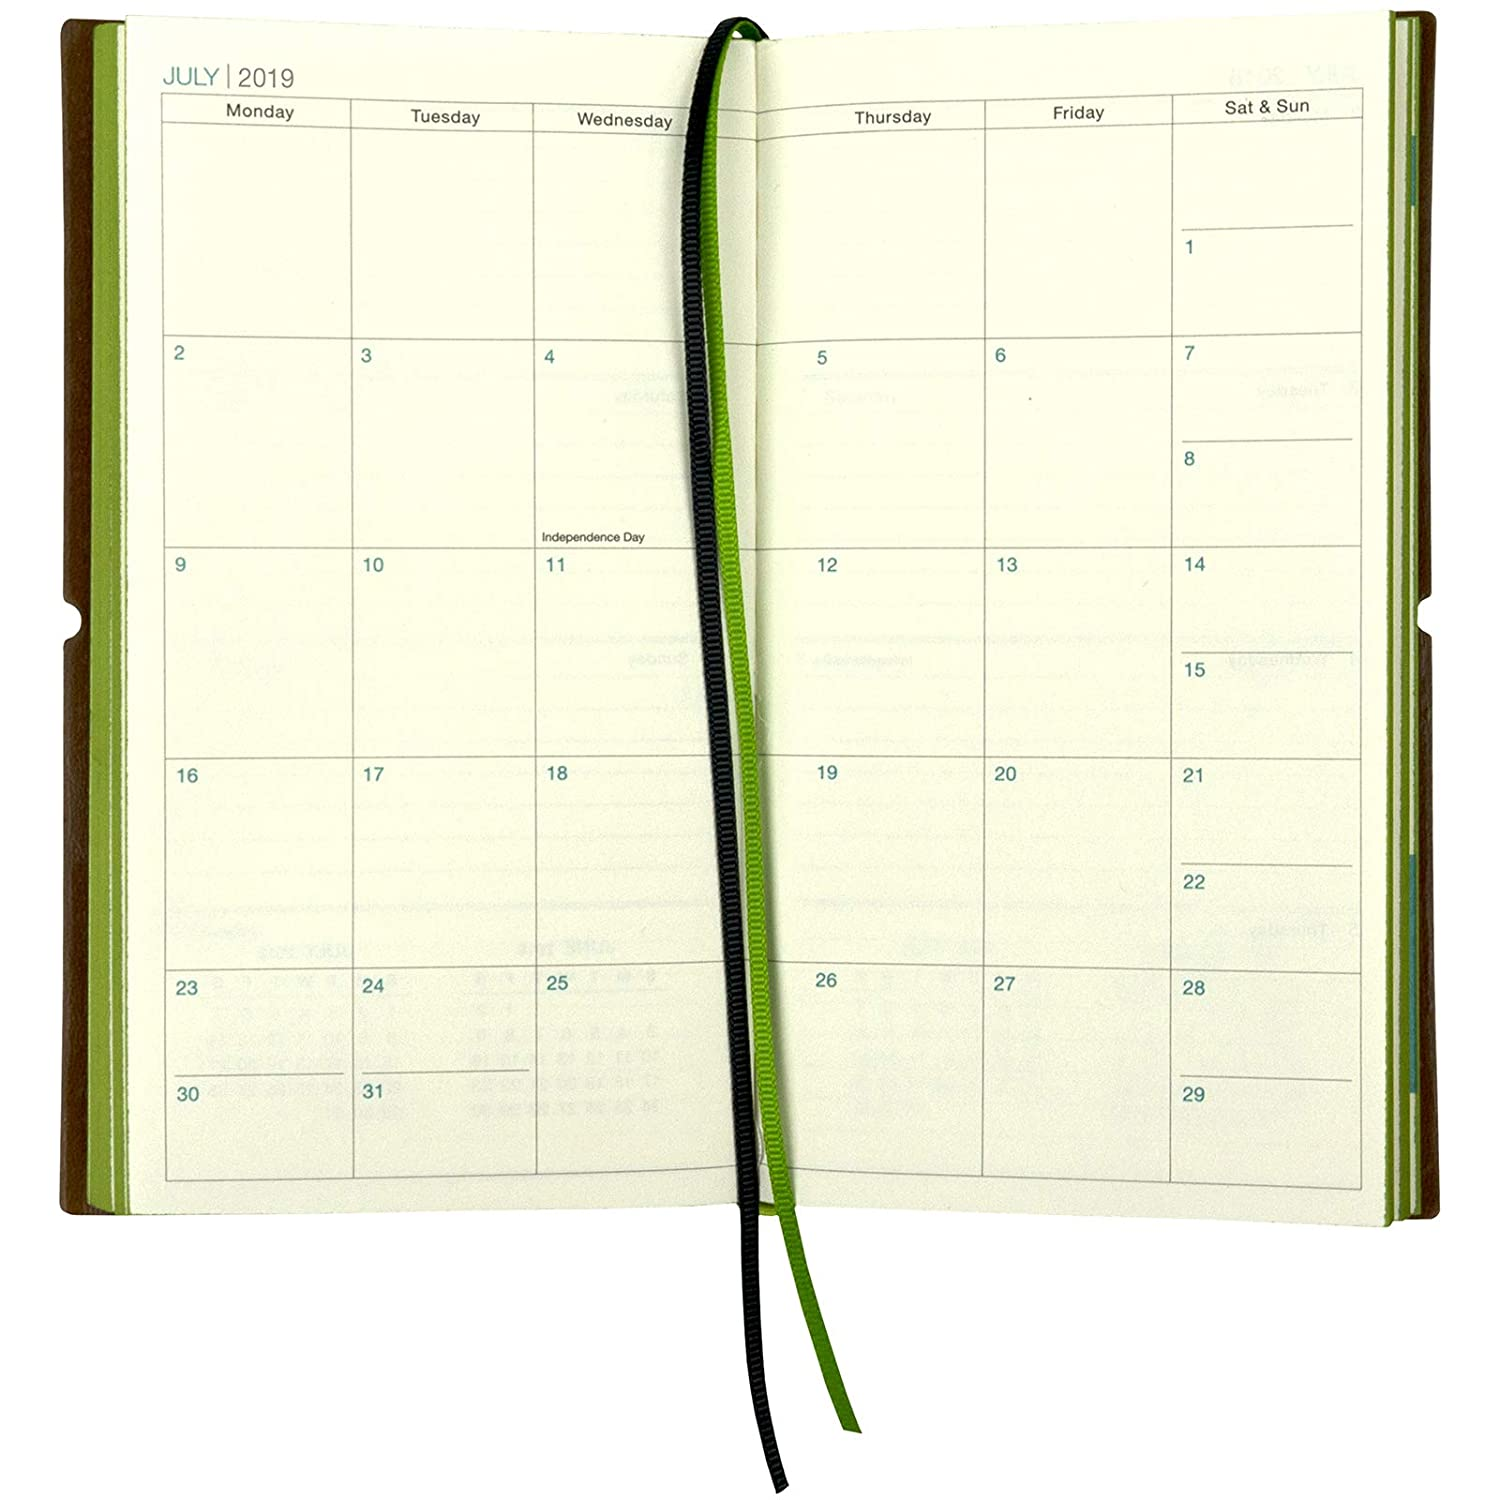 2019 Planner/Pocket Calendar: 14 Months (Nov 2018 - Dec 2019) Weekly, Monthly Calendars, Leather Material, Elastic Closure, Decorative Stitching, Page ...